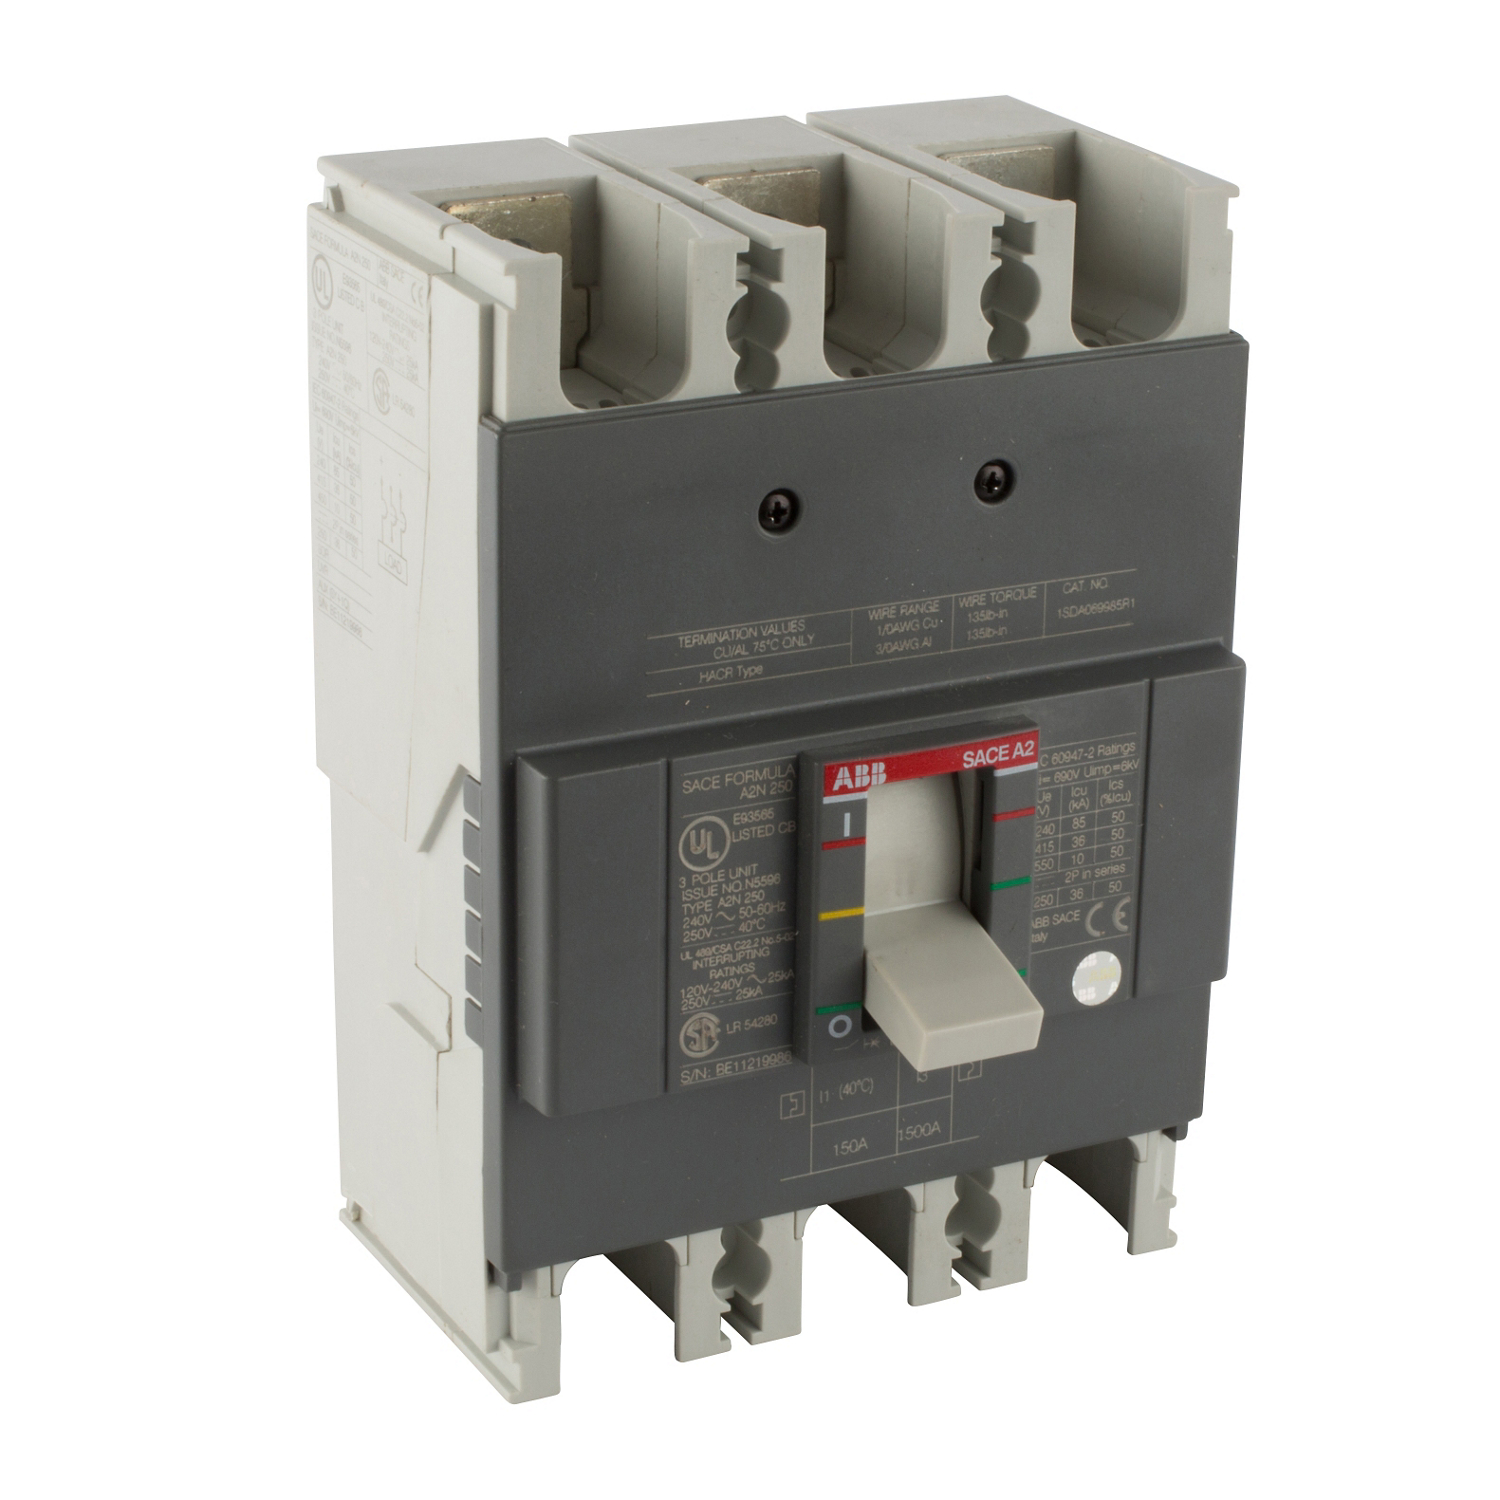 ABB A2N150TW Molded Case Circuit Breakrs